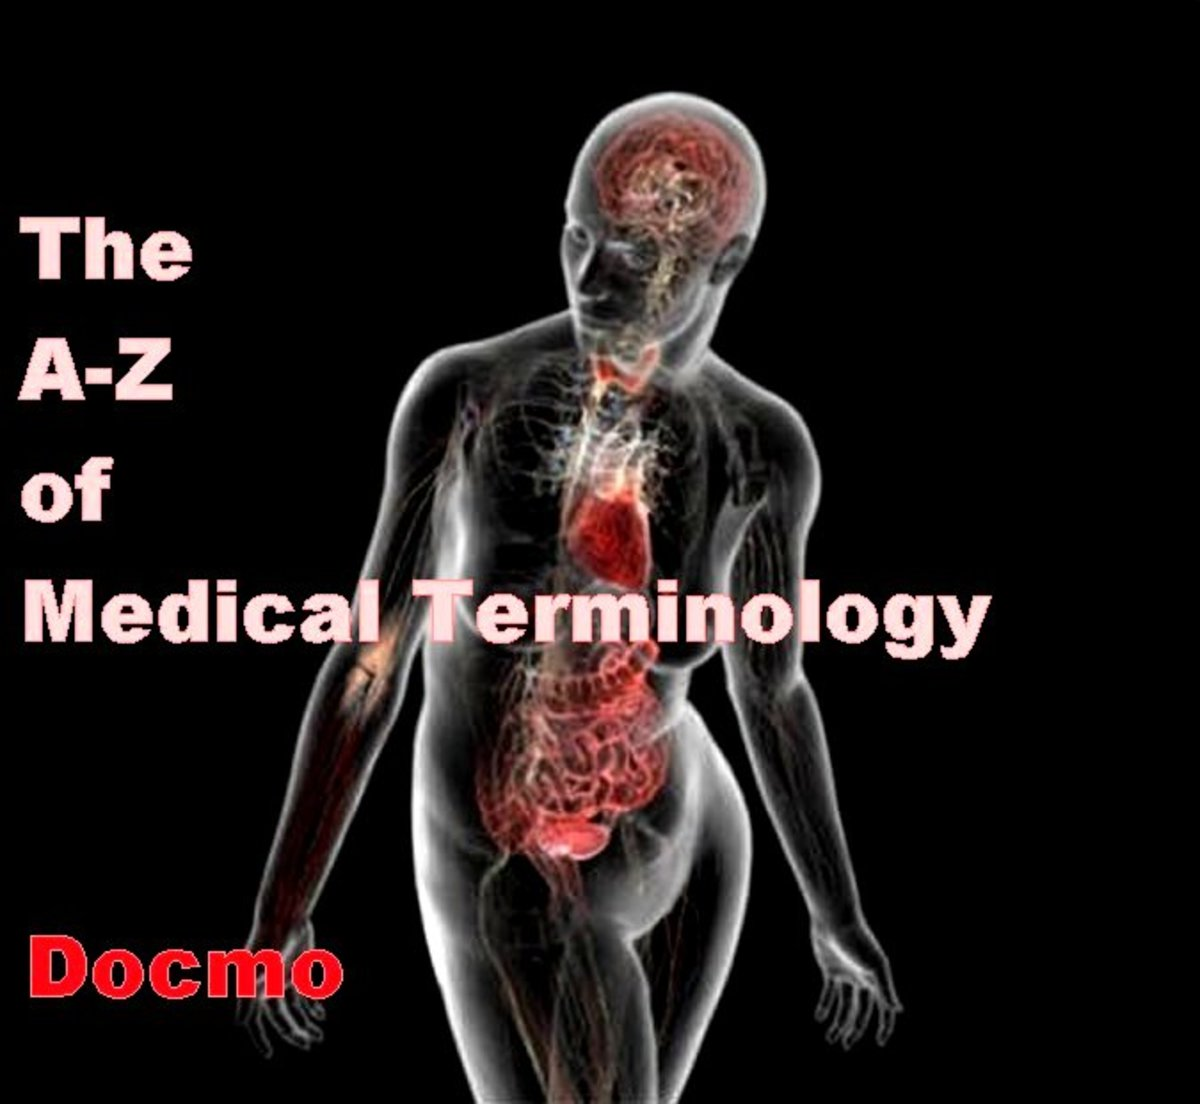 A-Z of Medical Terminology 2 - Finding your way